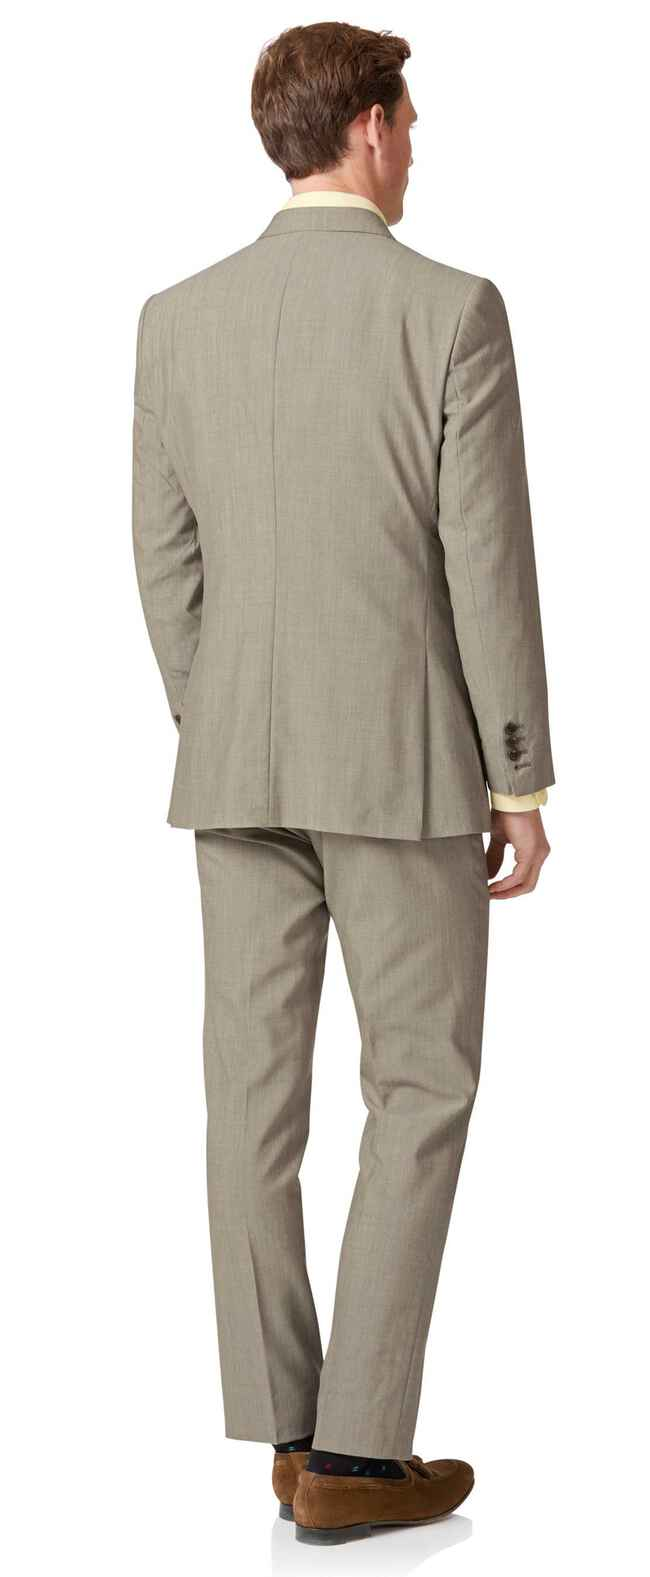 Natural Panama slim fit British suit